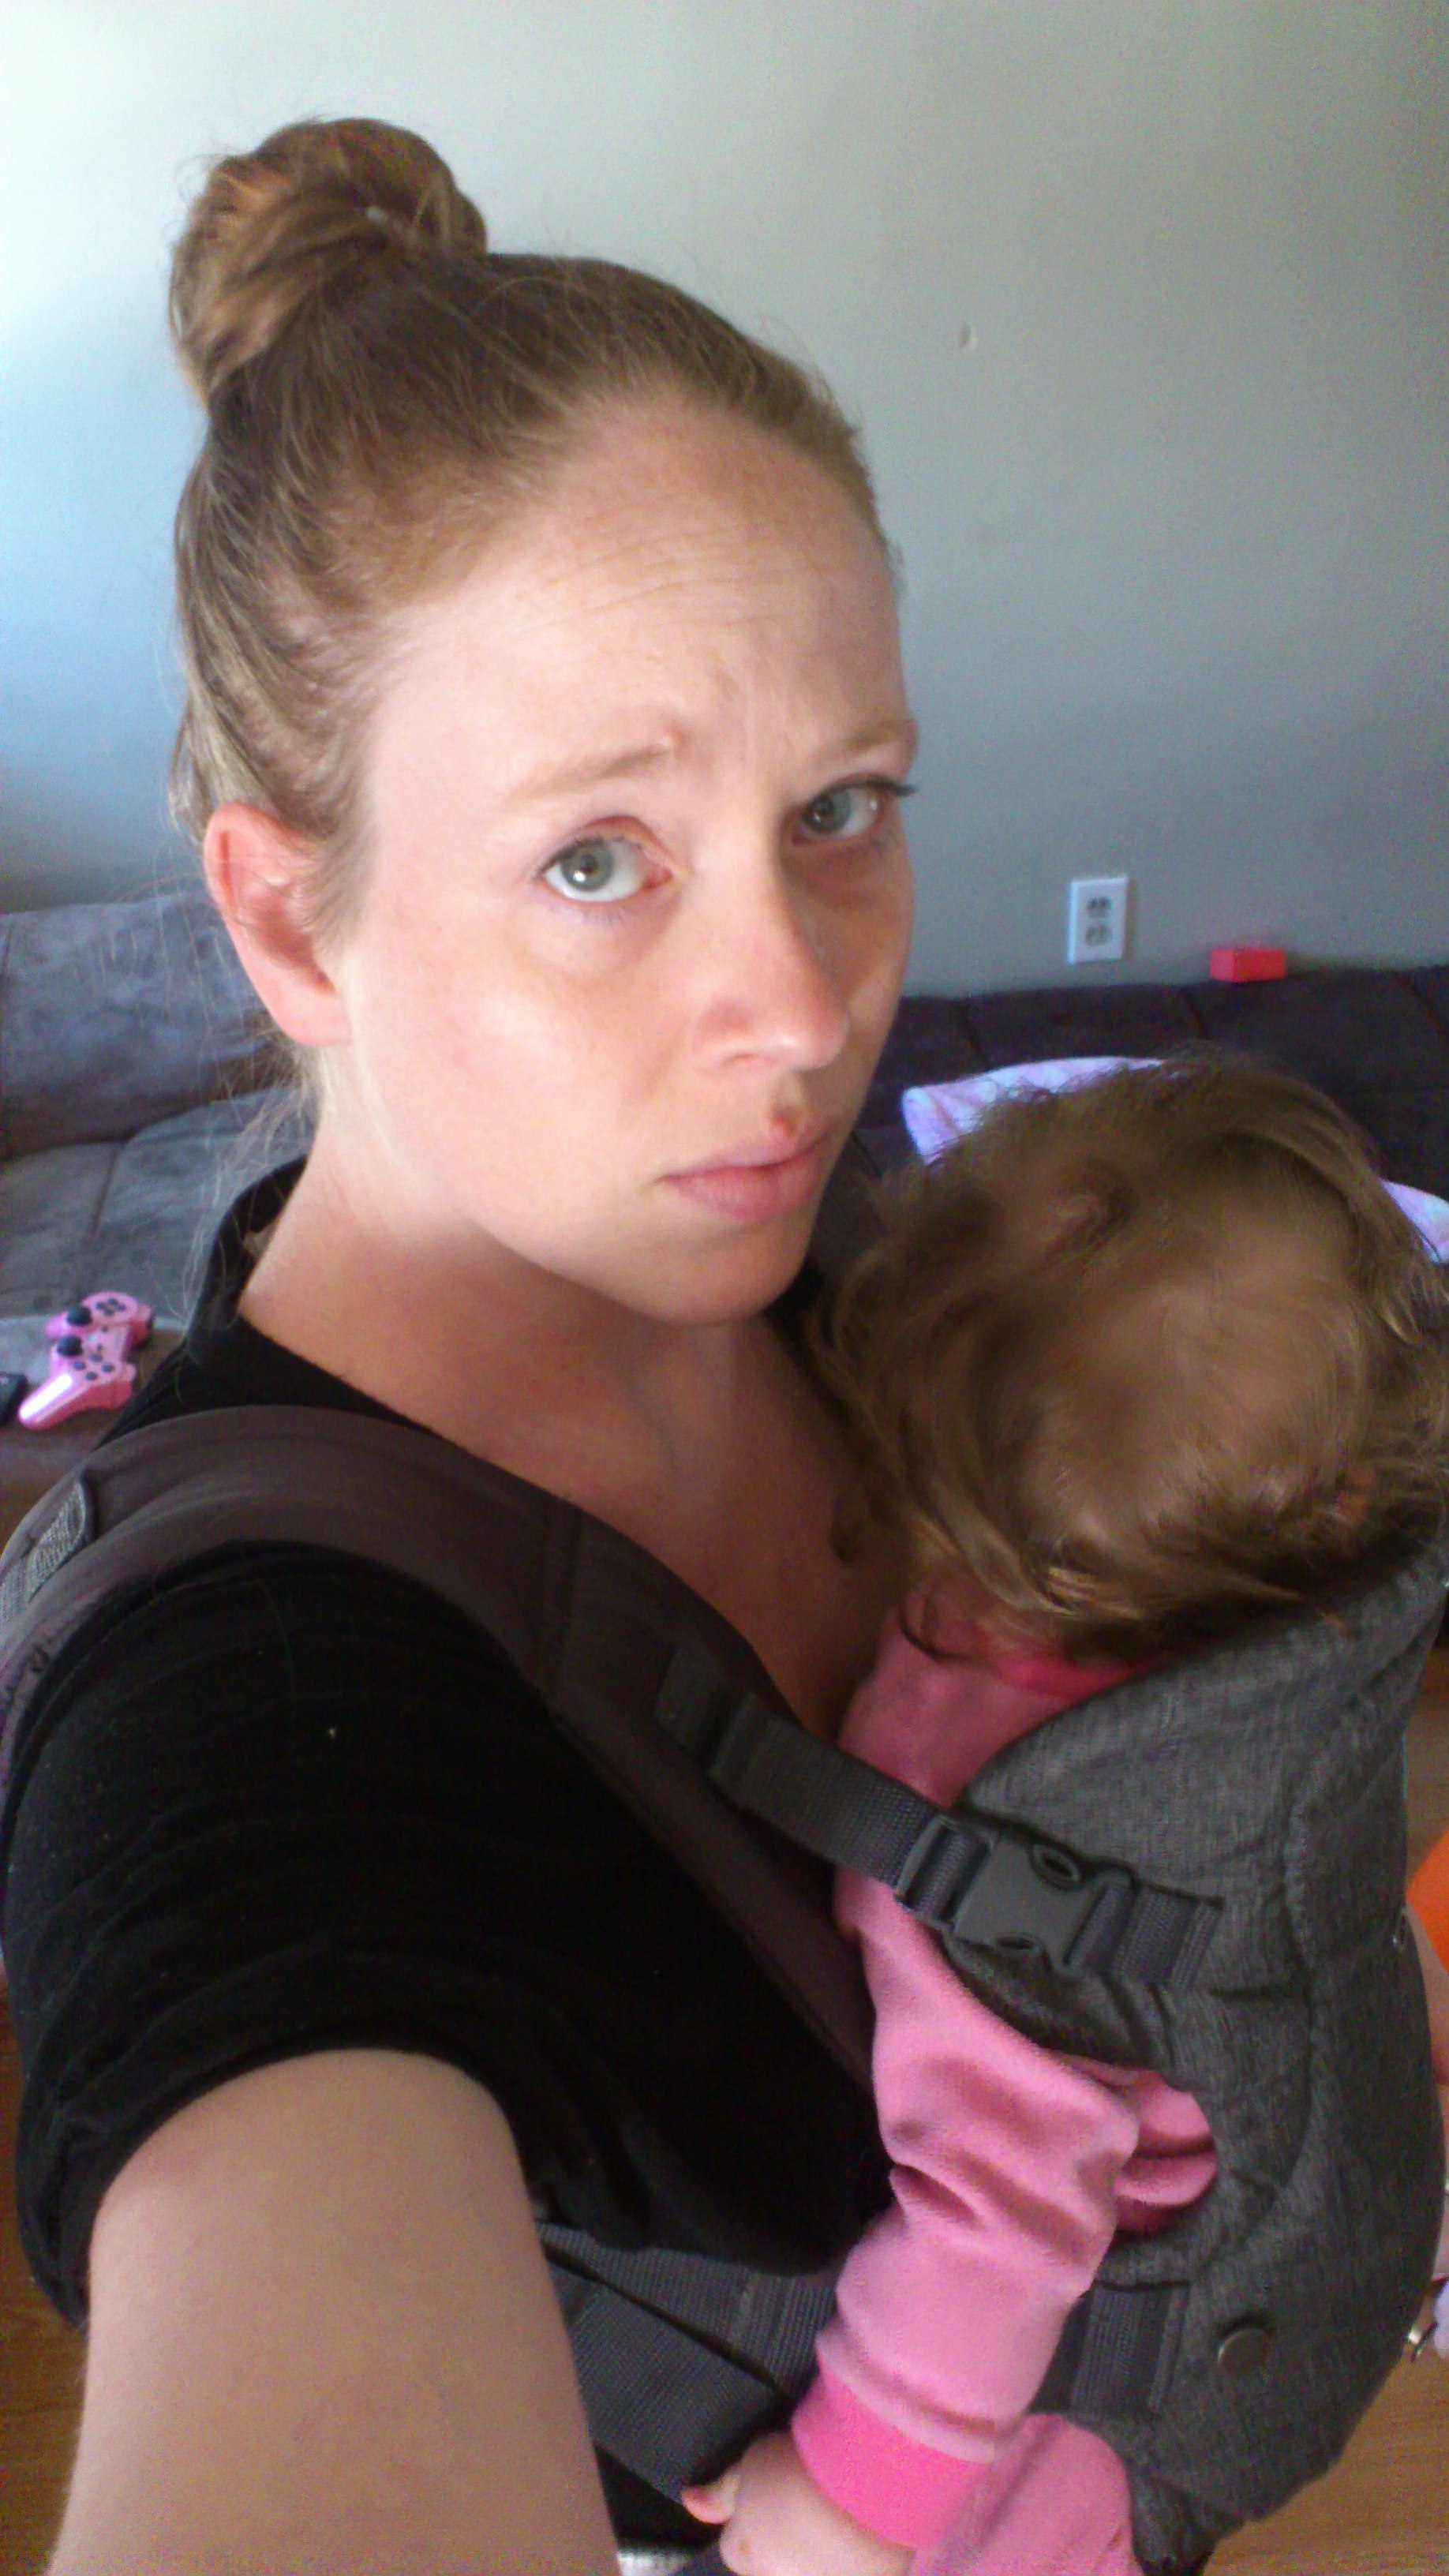 06966034a52 Infantino Flip Carrier reviews in Baby Gear - Carriers - ChickAdvisor